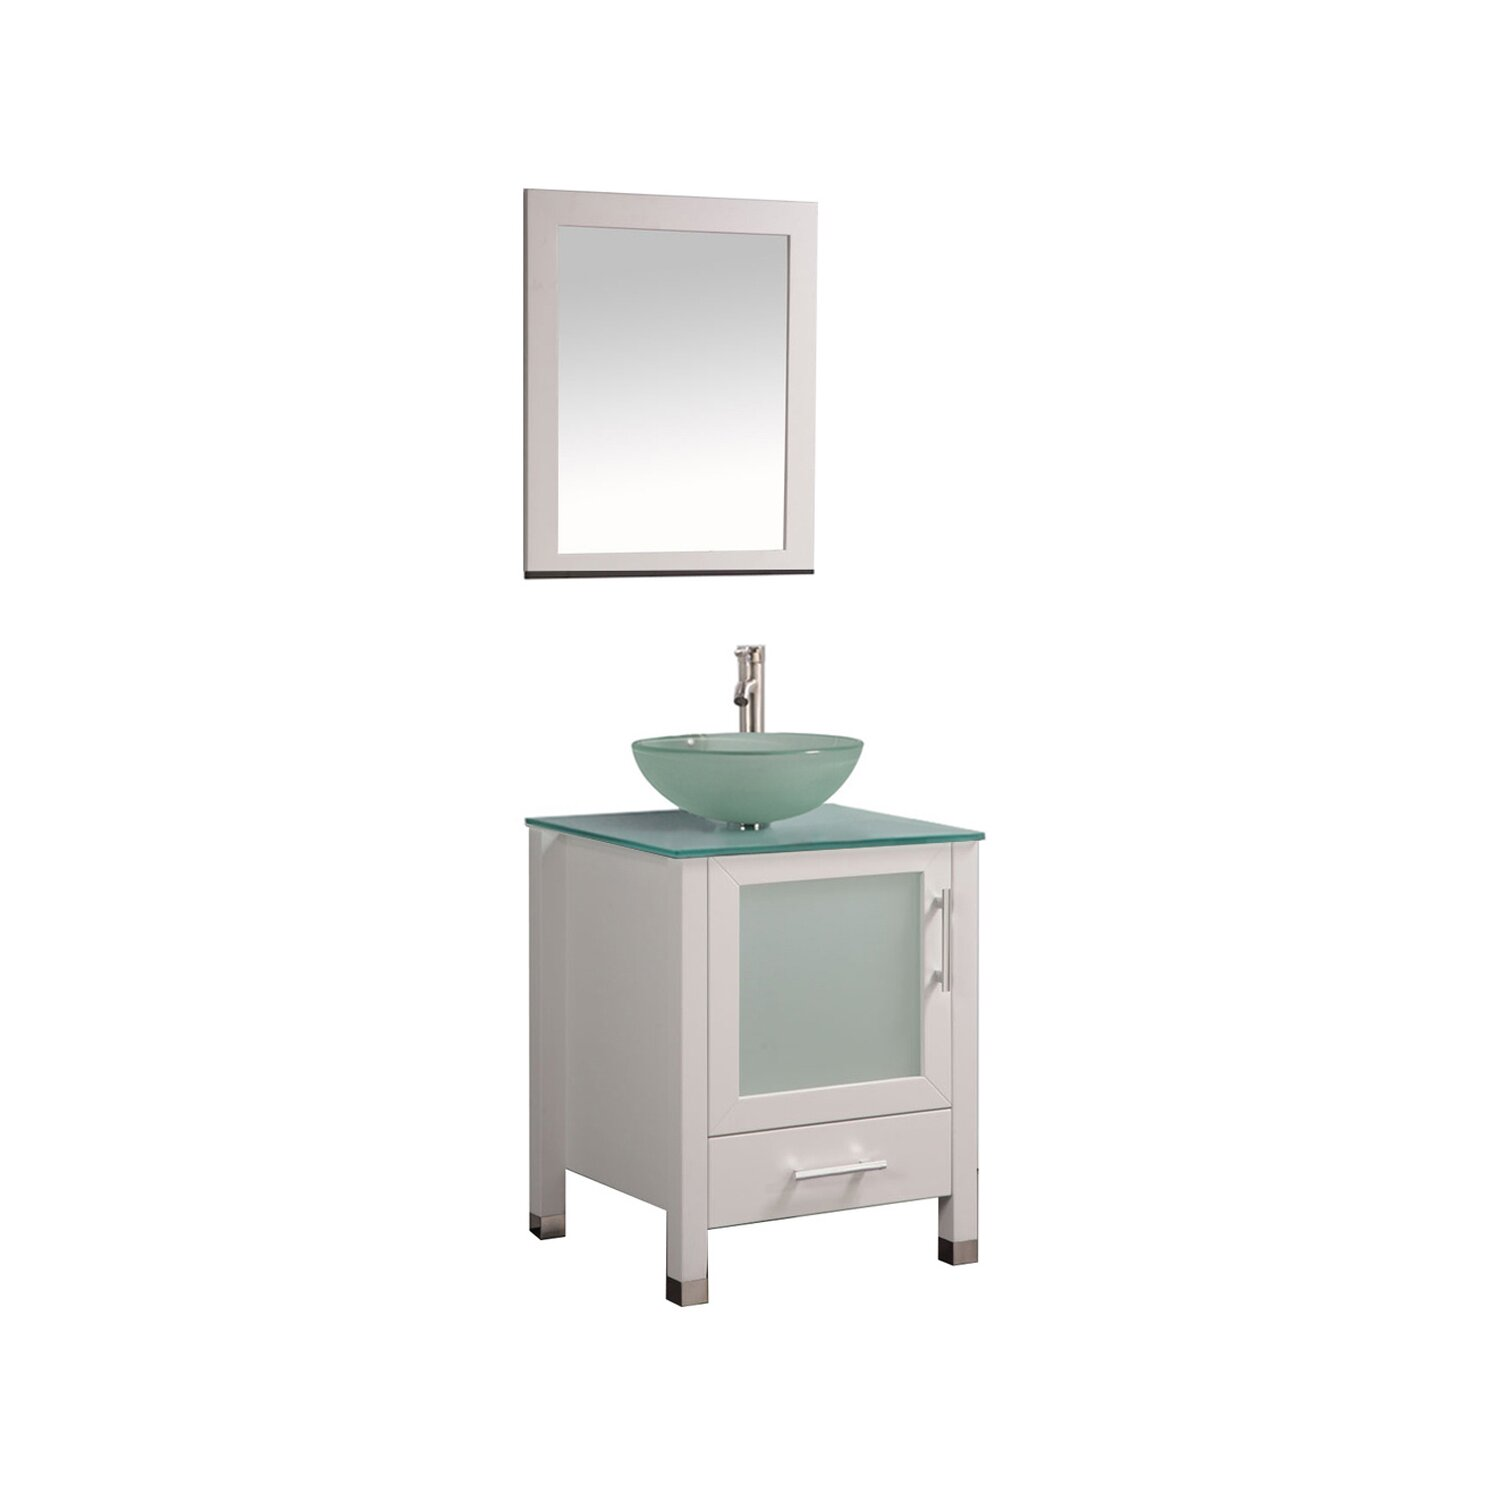 Mtdvanities cuba 24 single sink bathroom vanity set with for Bathroom picture sets